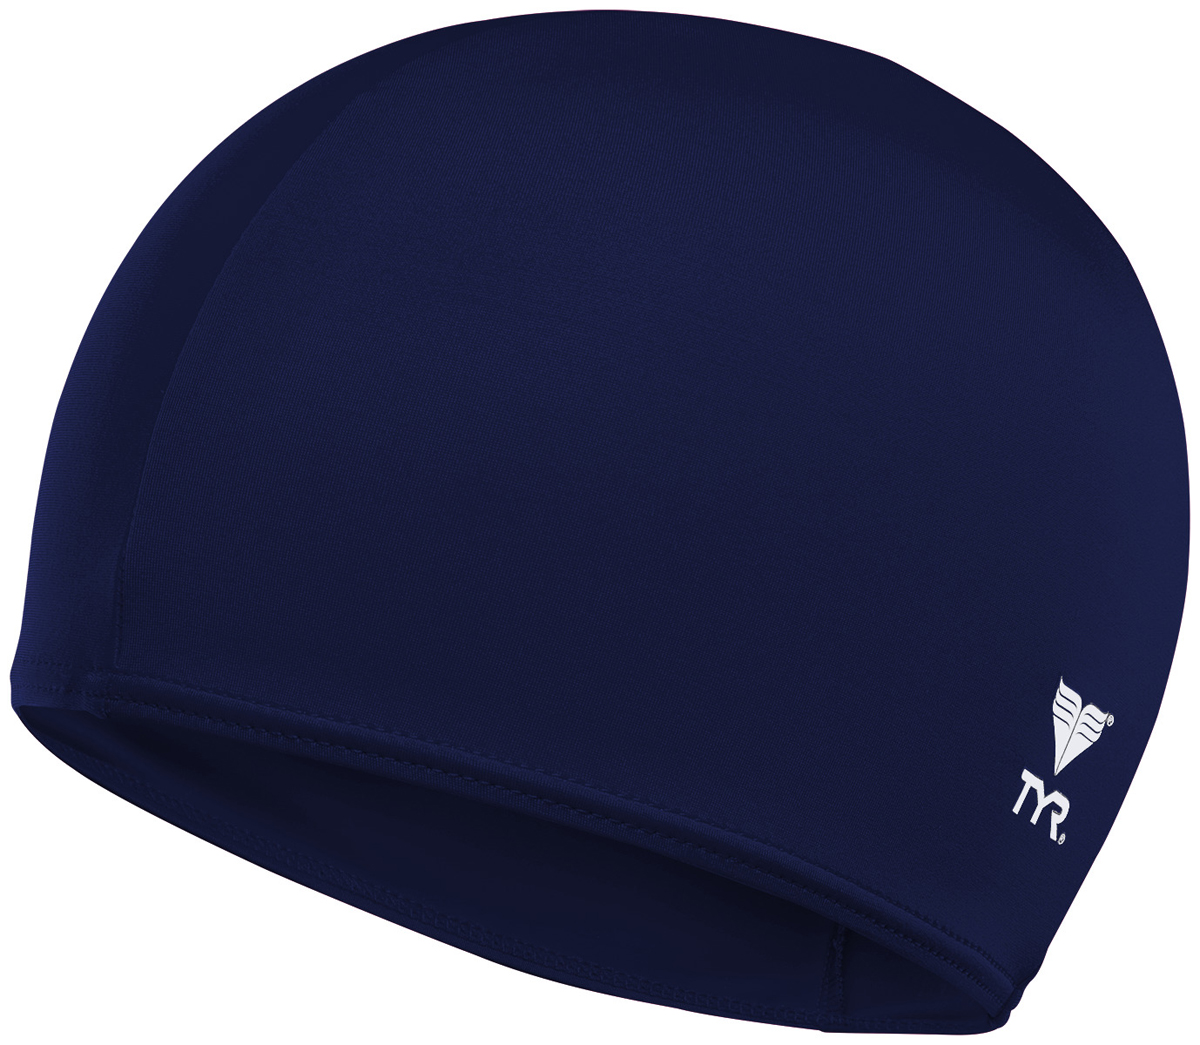 Шапочка для плавания Tyr Solid Lycra Cap, цвет: синий. LCY топ для плавания tyr tyr ty003ewxiw63